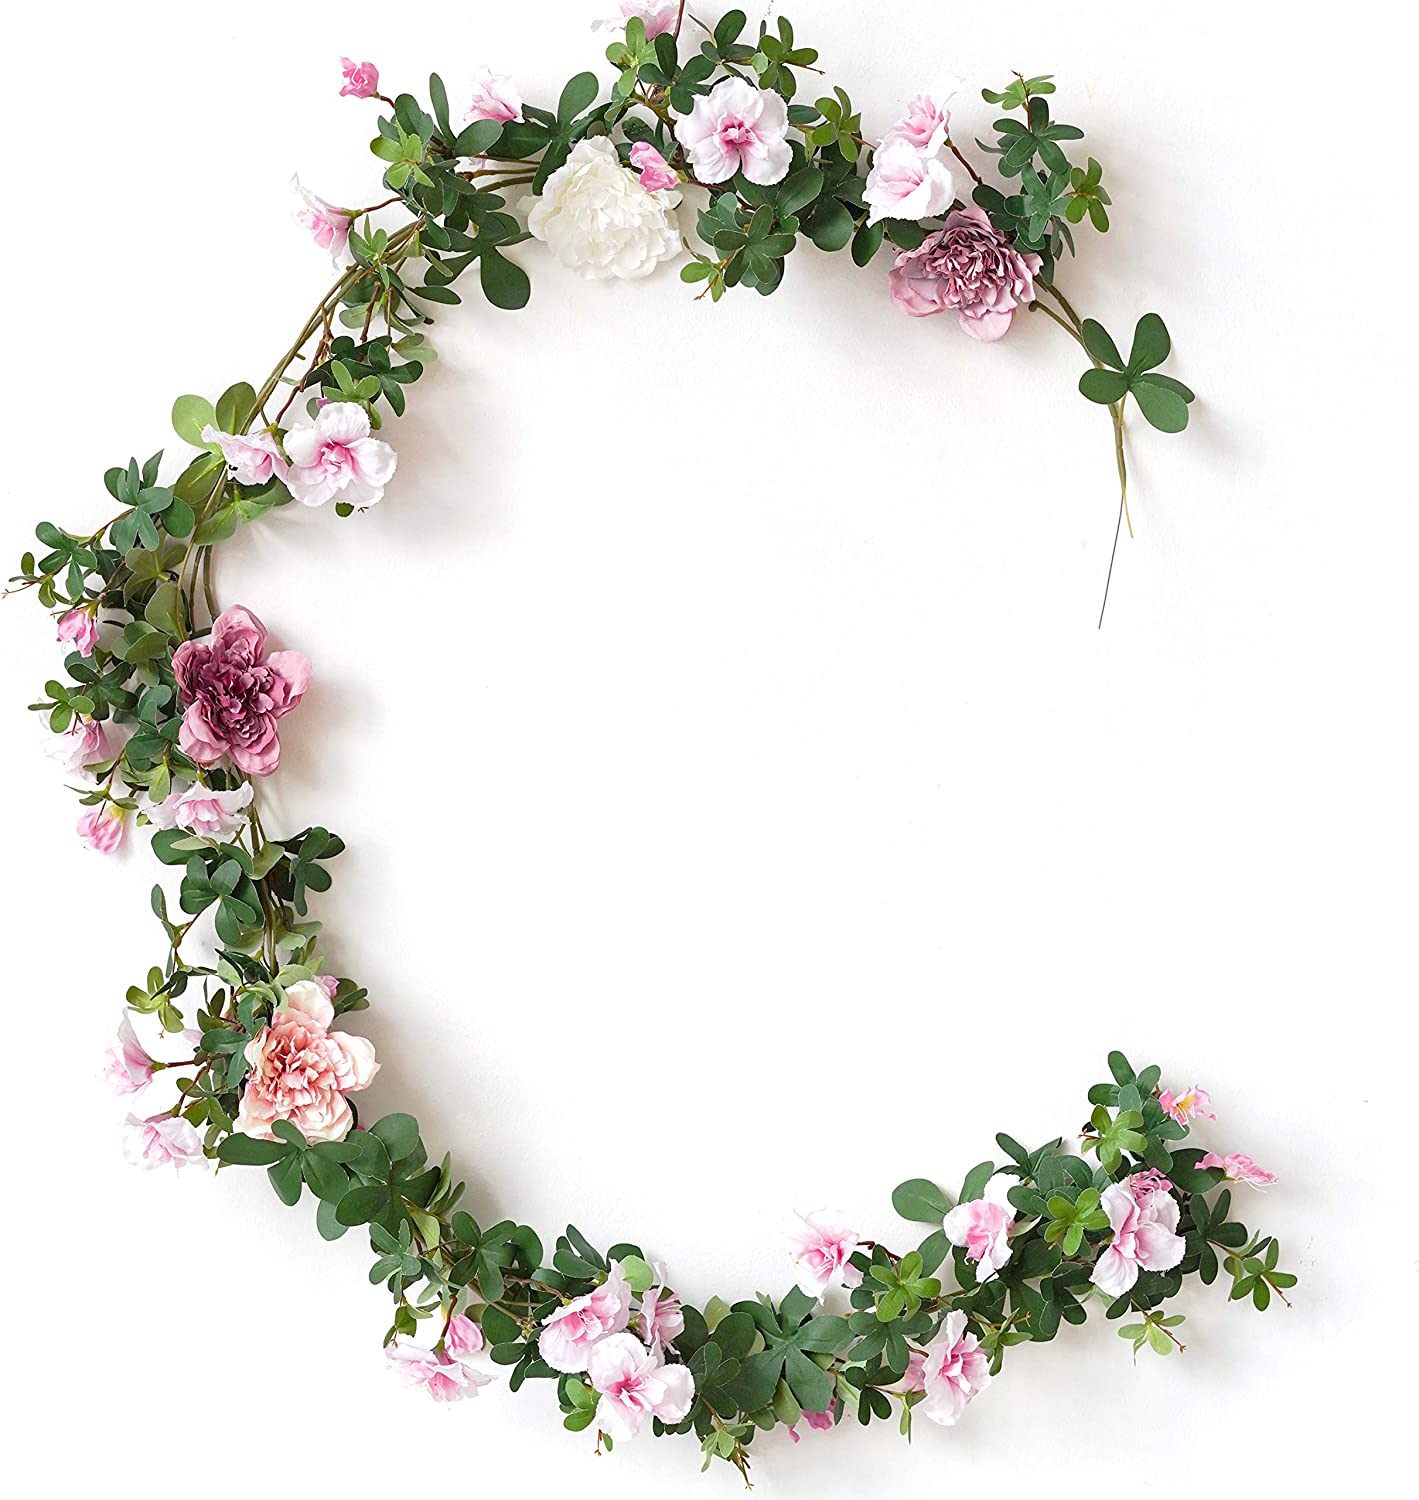 WAKISAKI Fake Vines Artificial Flowers Cherry Blossom & Ivy Hanging Plants Greenery Garland, for Cute Kawaii Room Decor Japanese Flower Wall, Wedding Decorations Ceremony Arch (Breezing Blush)